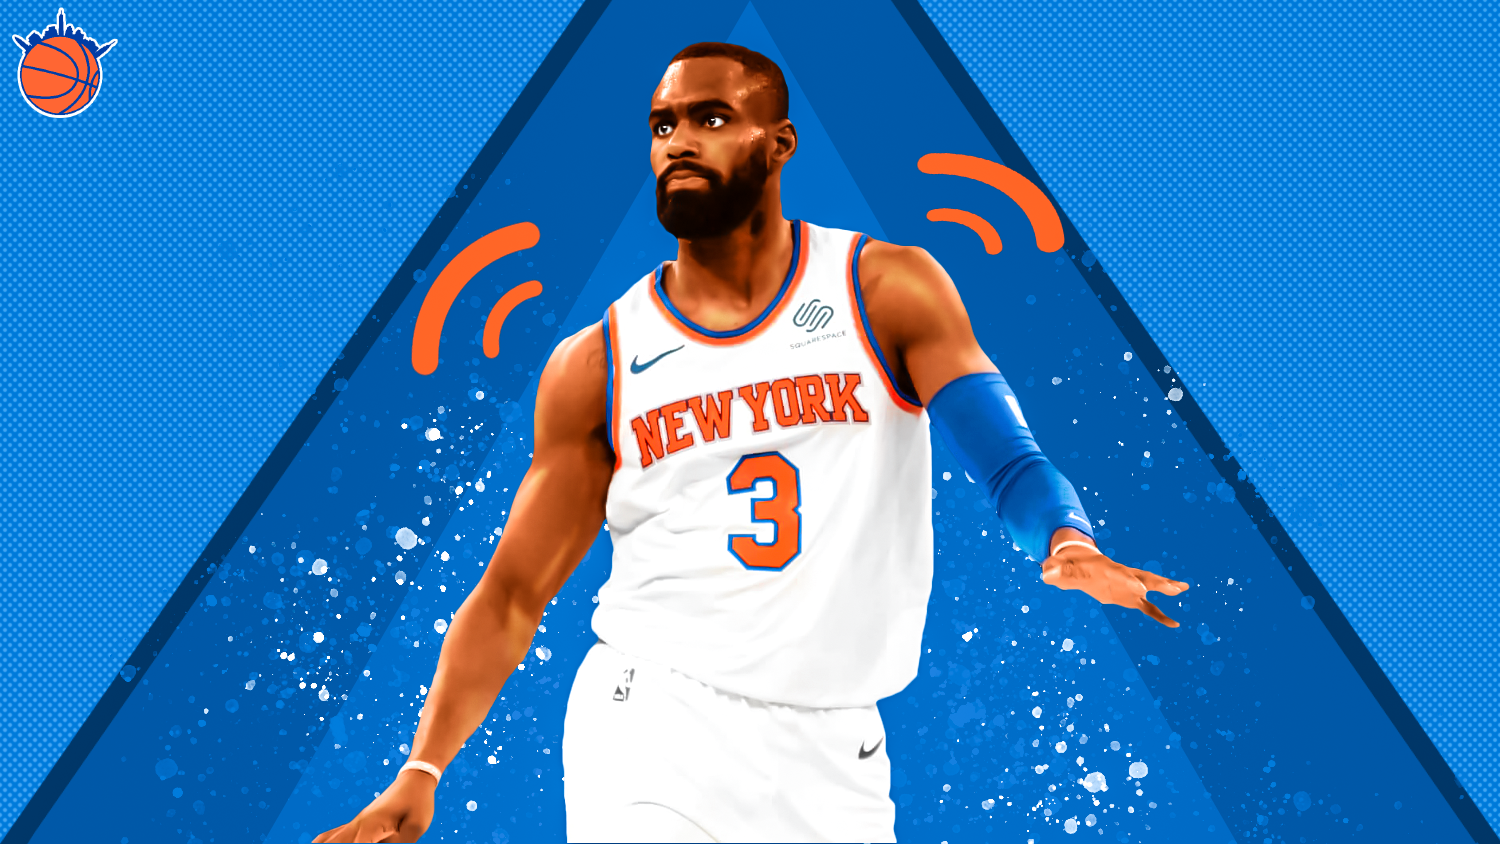 bb3d4251c8f6 Tim Hardaway Jr. Wants to Be More Than a Costly Scorer